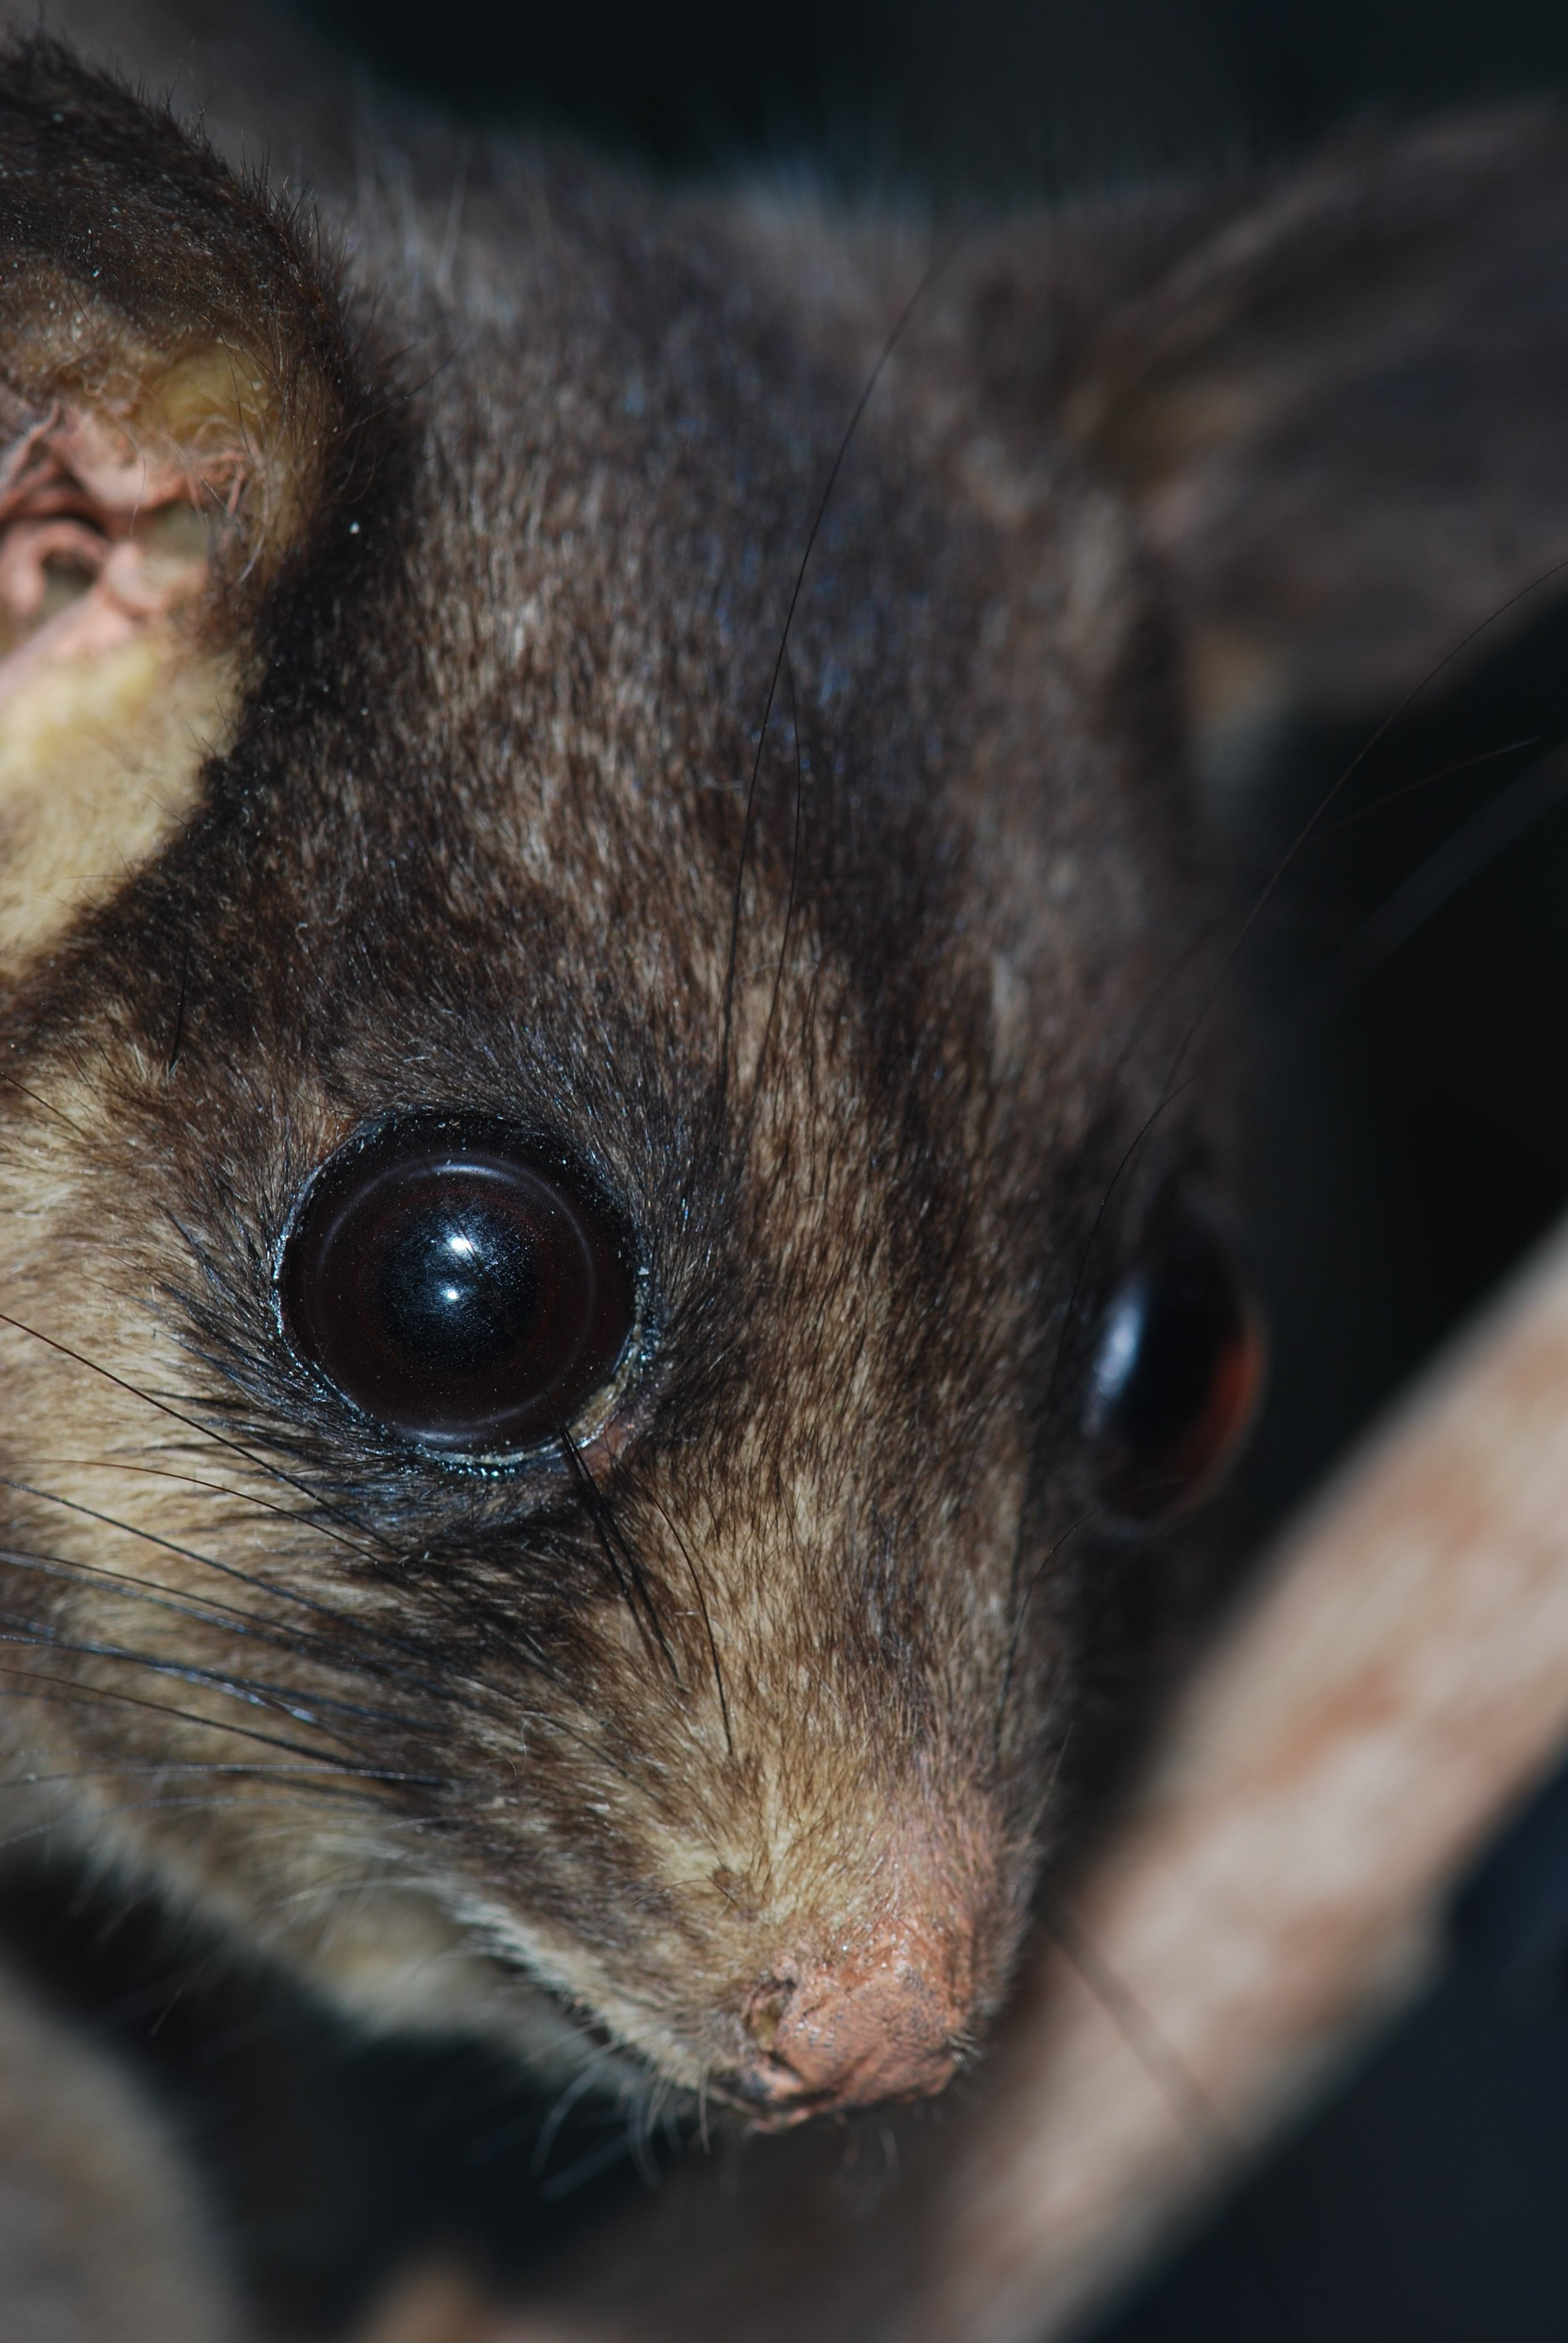 Leadbeater's possum ( Gymnobelideus leadbeateri ).  Image: CC BY-SA 3.0, https://commons.wikimedia.org/w/index.php?curid=2264884